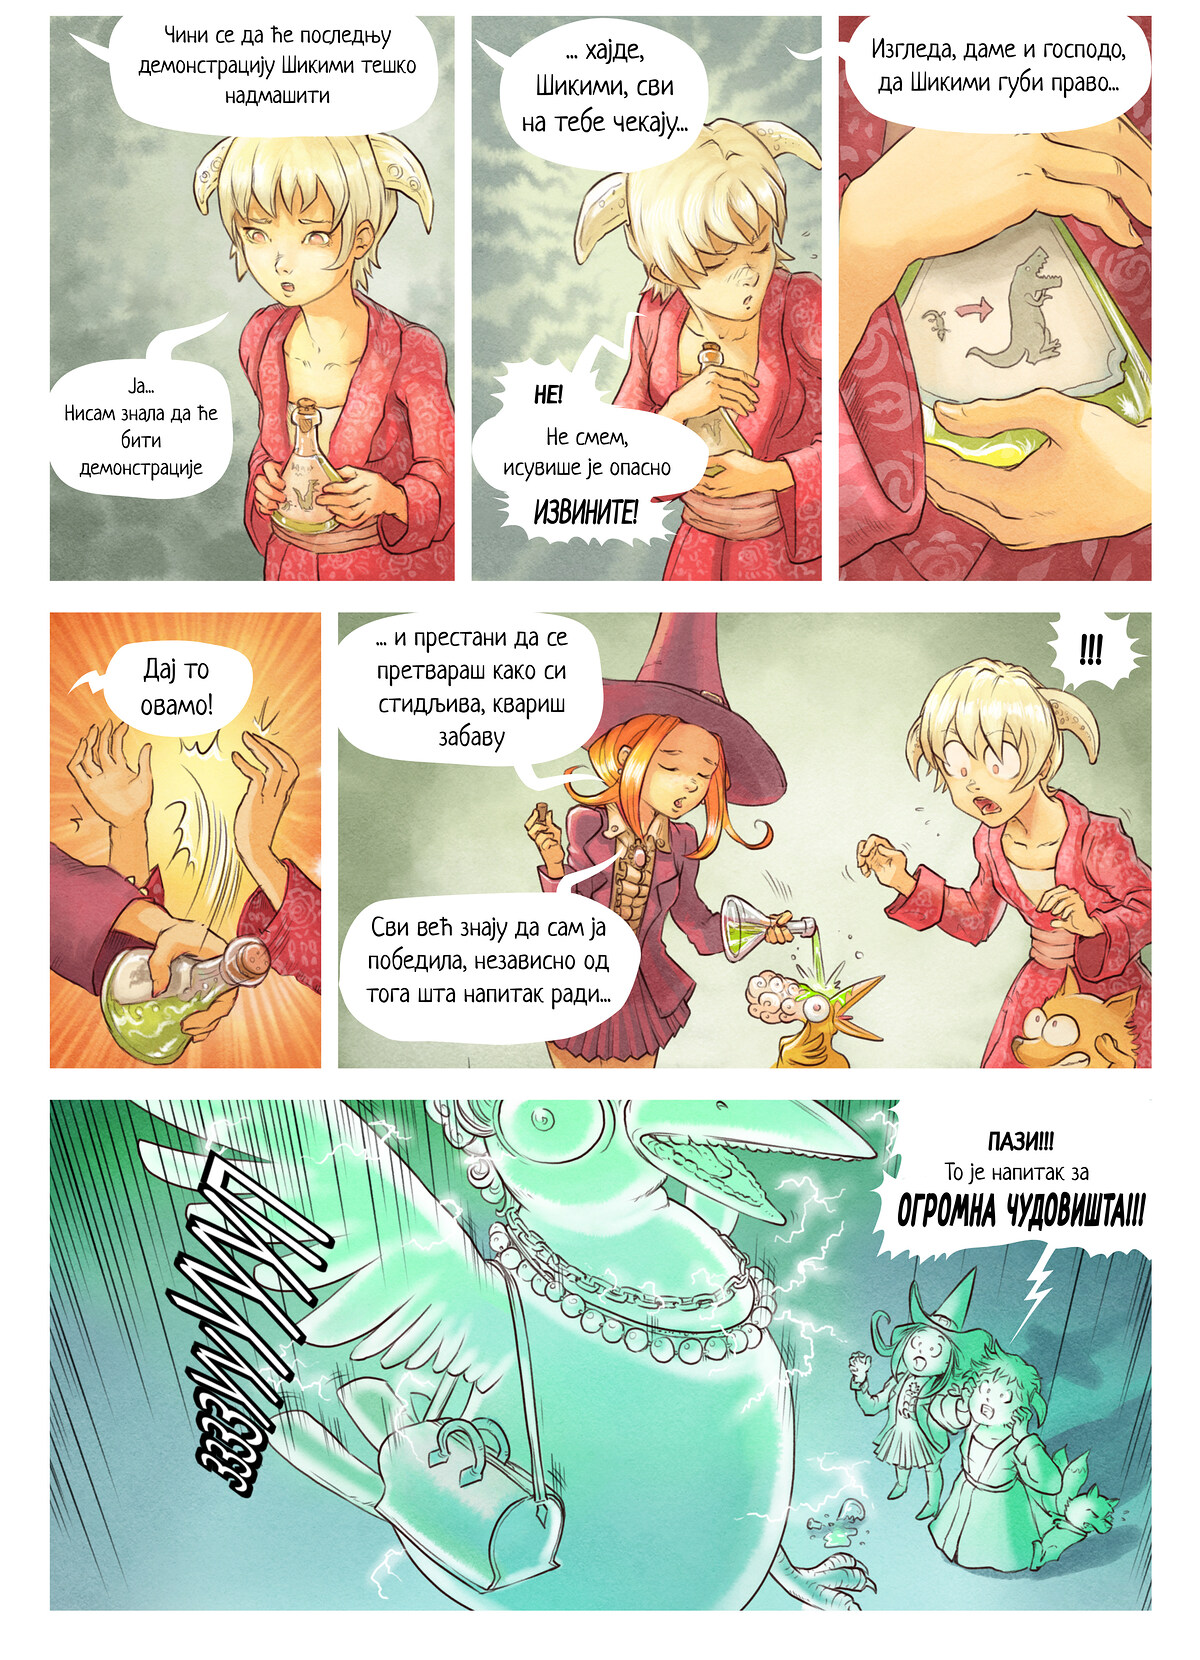 A webcomic page of Pepper&Carrot, episode 6 [sr], page 6